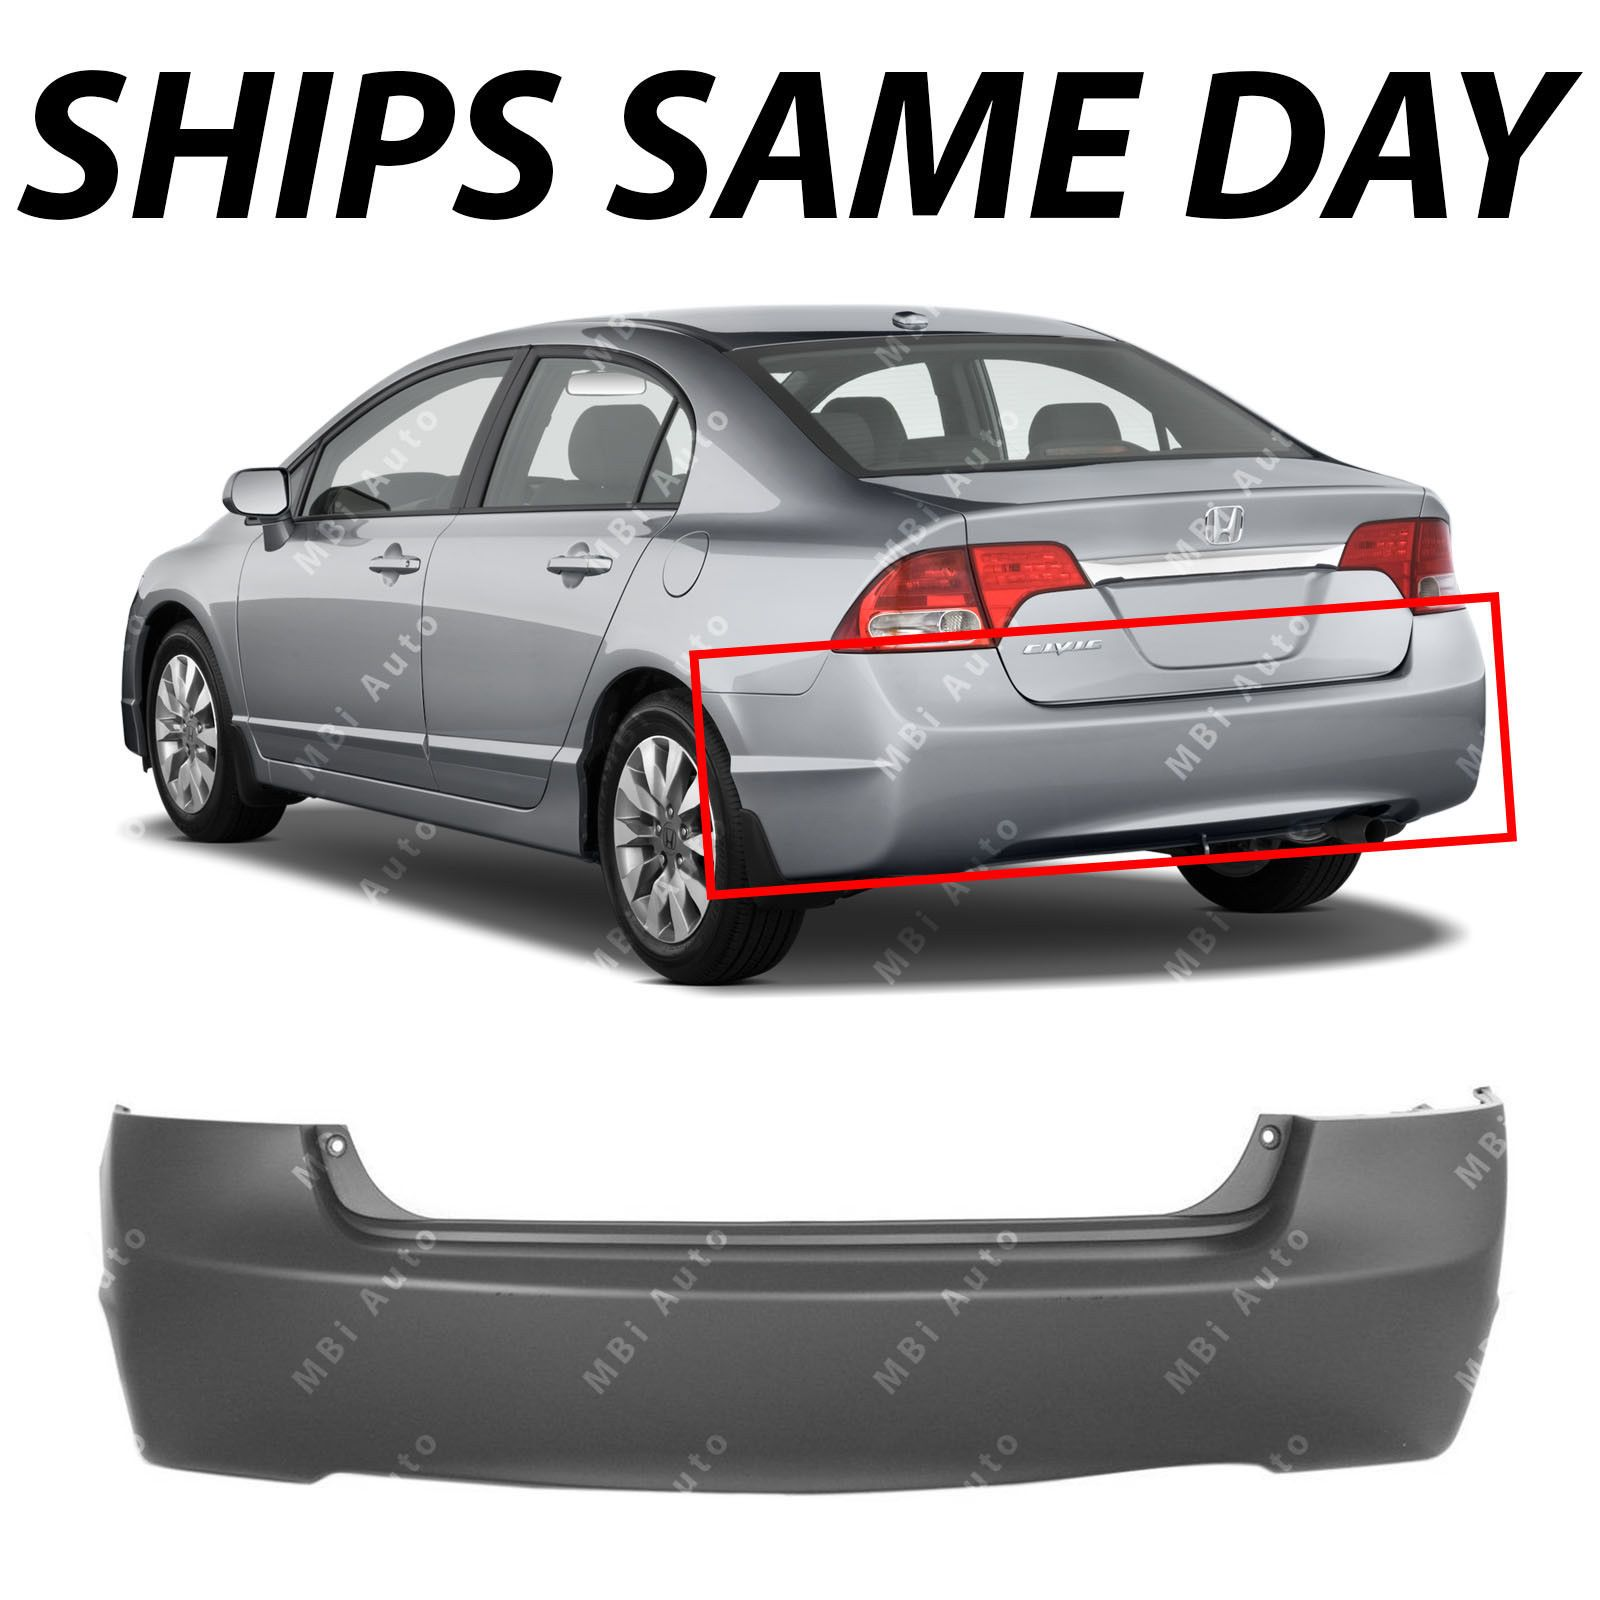 Nice Awesome New Primered Rear Bumper Cover Replacement For 2006 2011 Honda Civic Sedan 4dr 2017 2018 2011 Honda Civic Honda Civic Sedan Civic Sedan